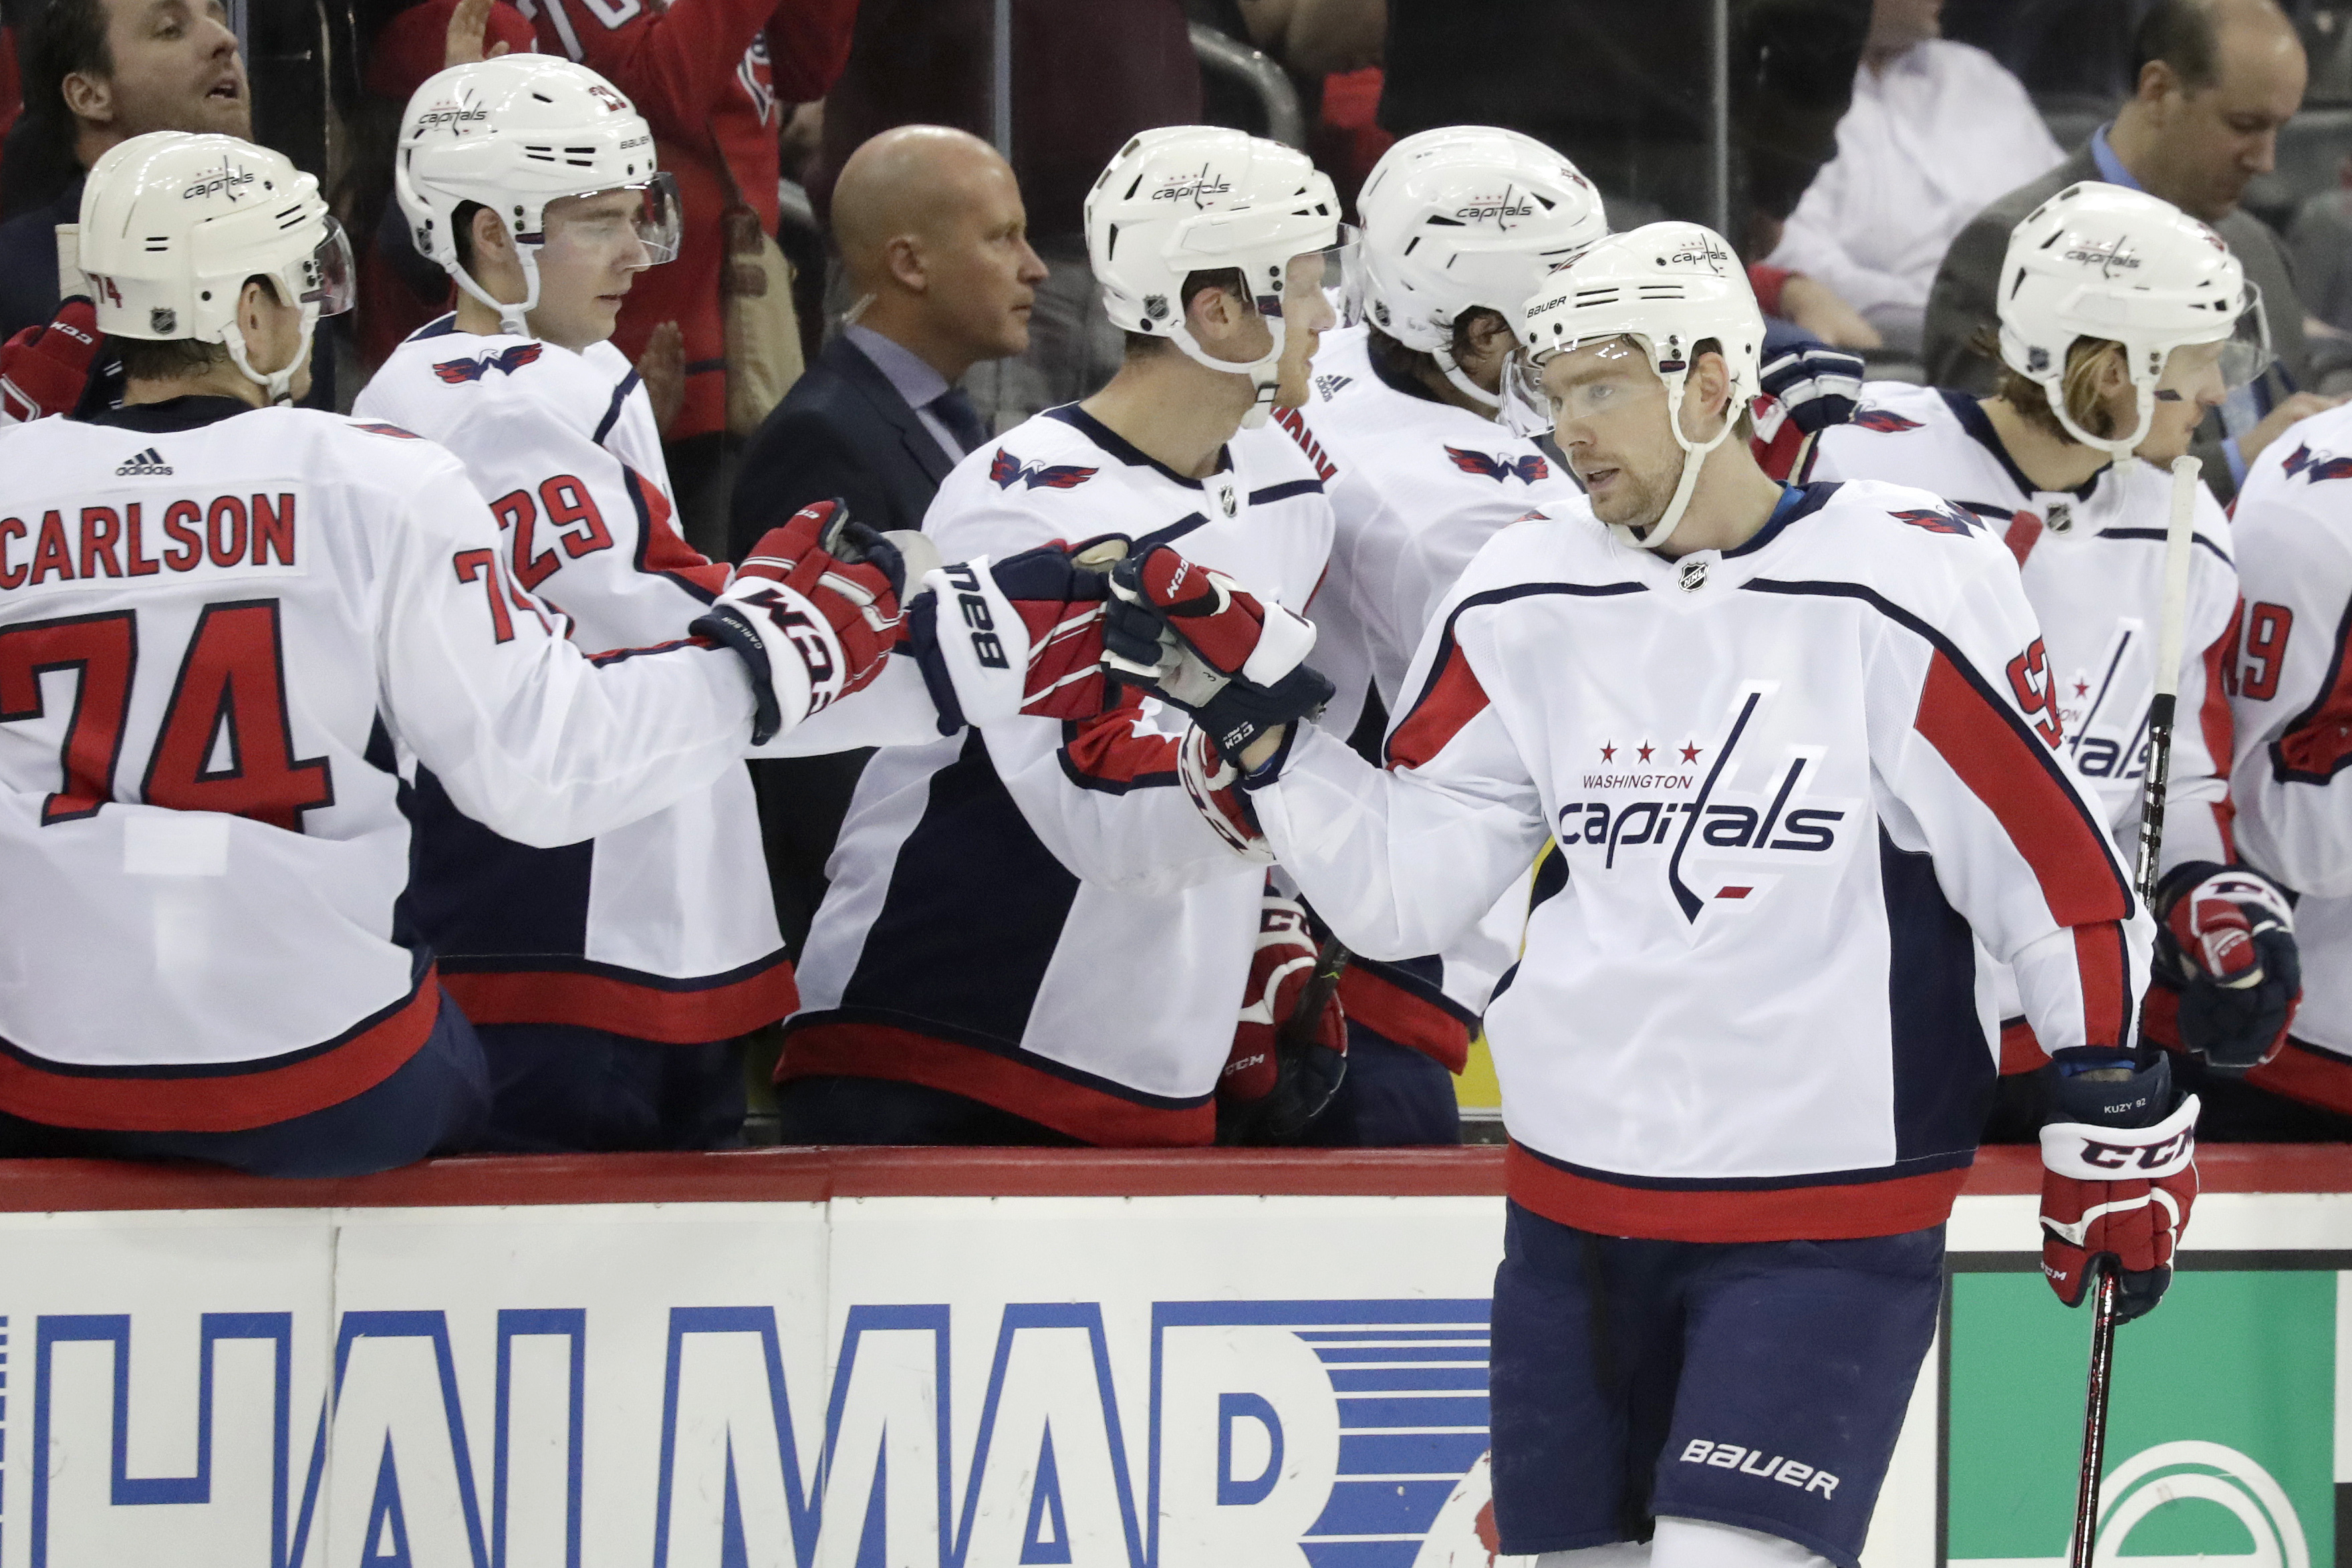 Connolly leads Caps into 1st place with 4-1 win over Devils